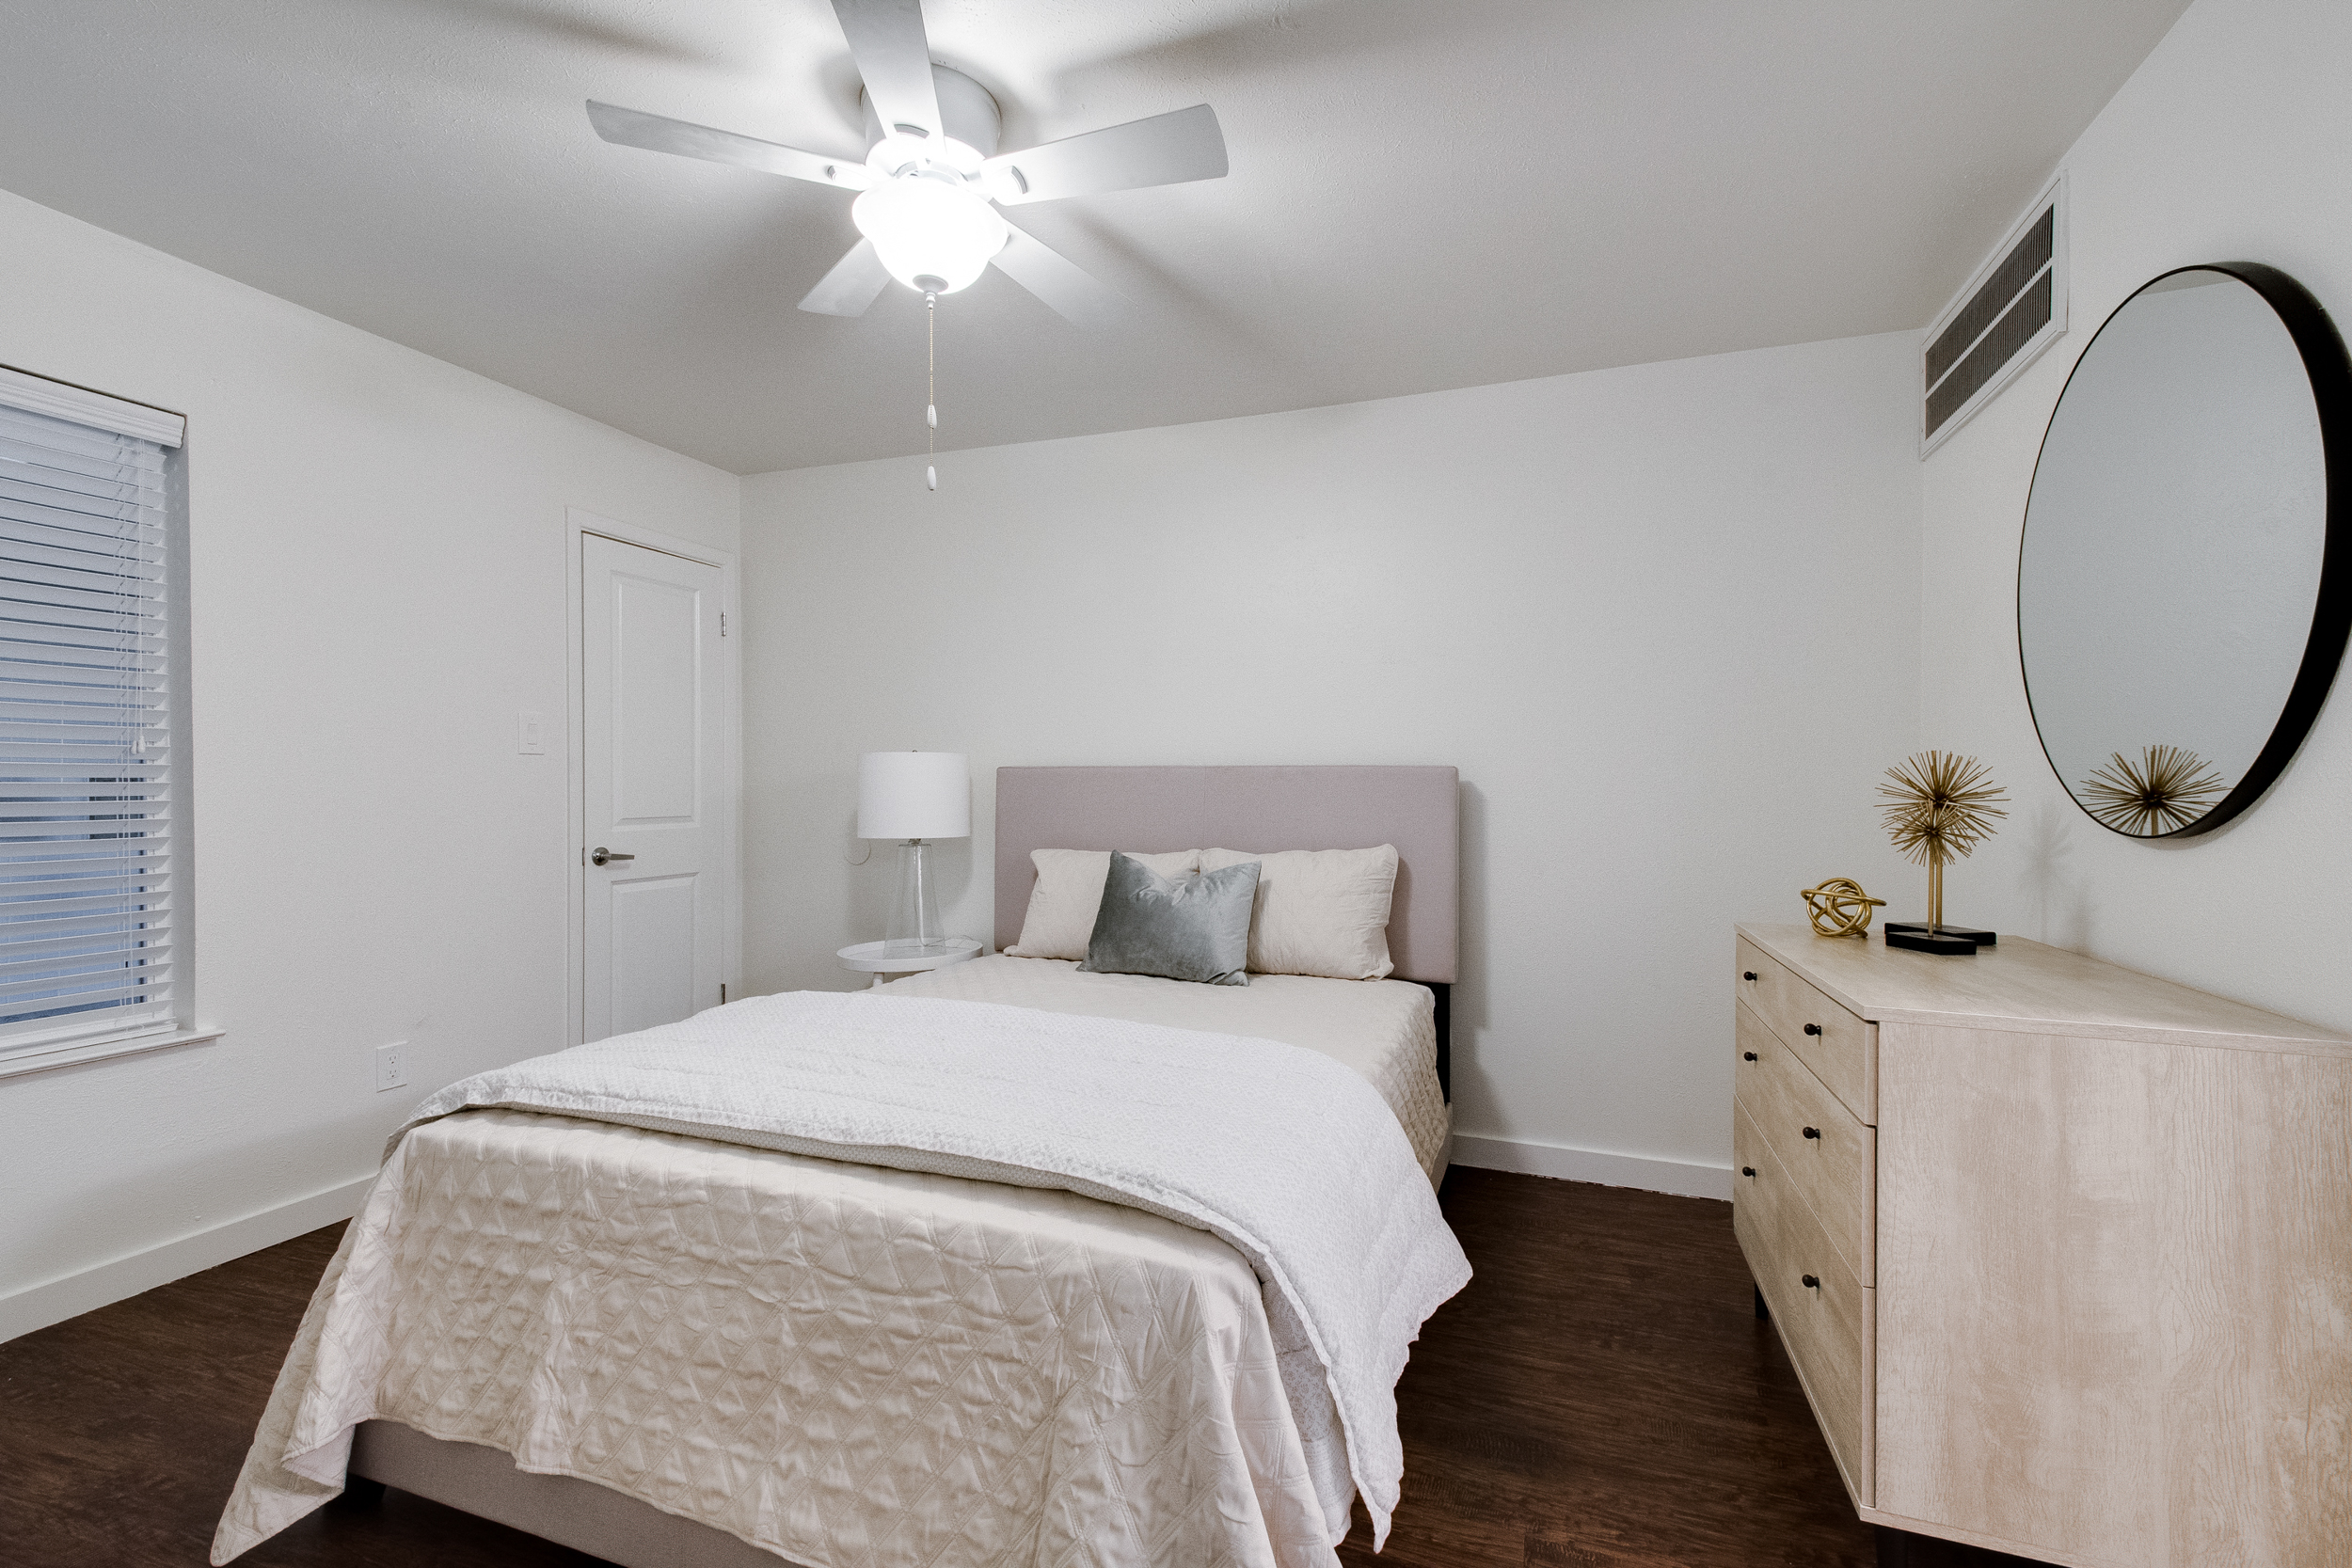 Interior view of a bedroom with white sheets, a wooden dresser, gold accent decorations, and a circular mirror